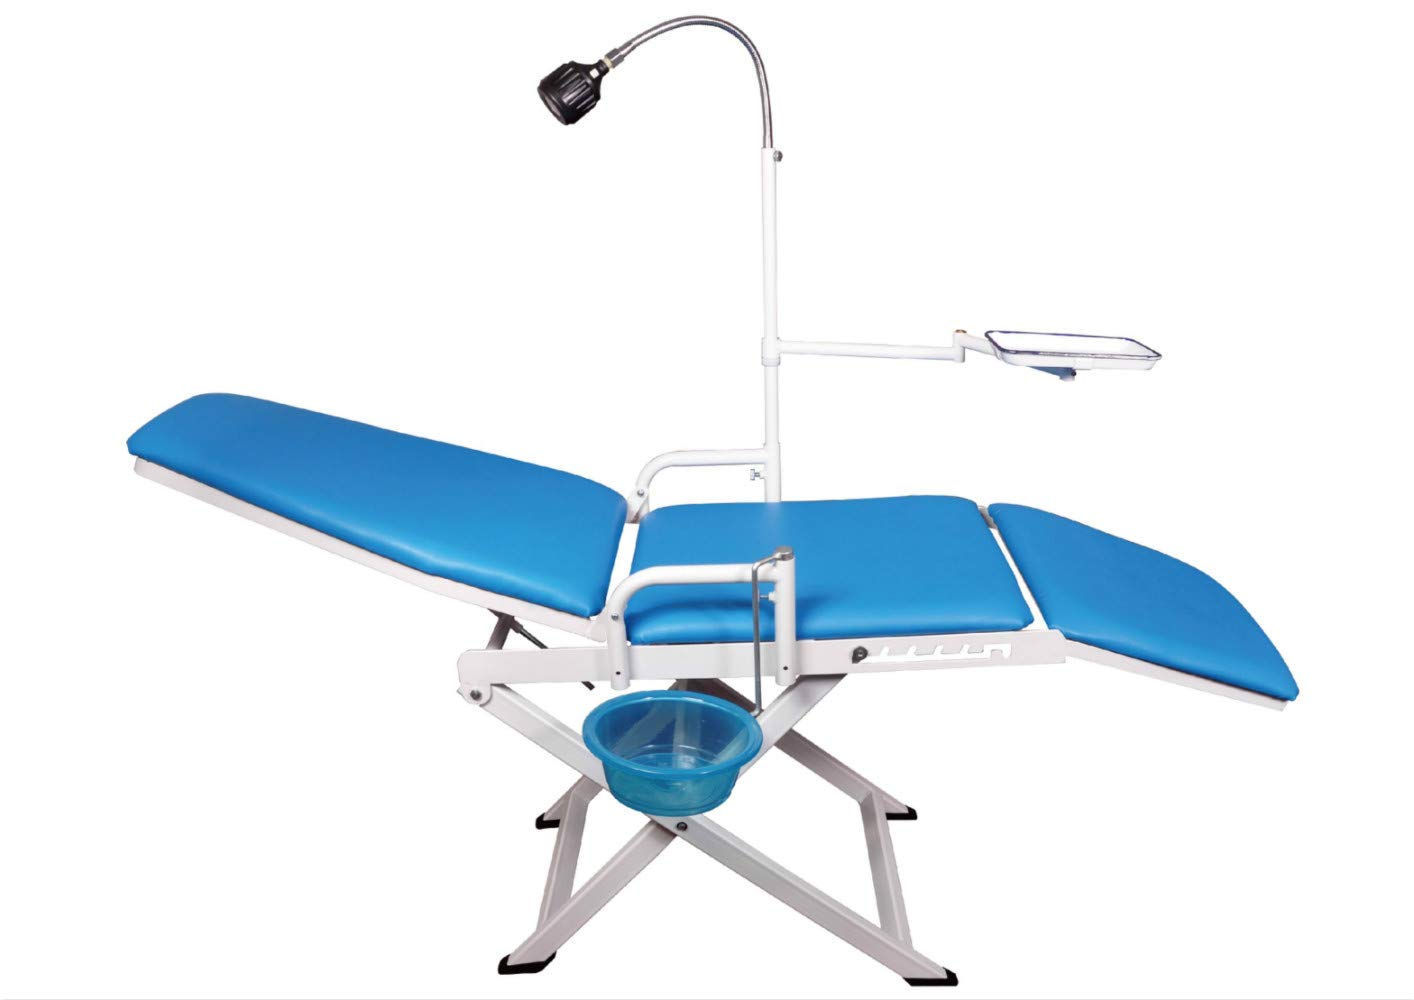 Dental Medical Portable Mobile Chair with LED Cold Light Full Folding Chairs